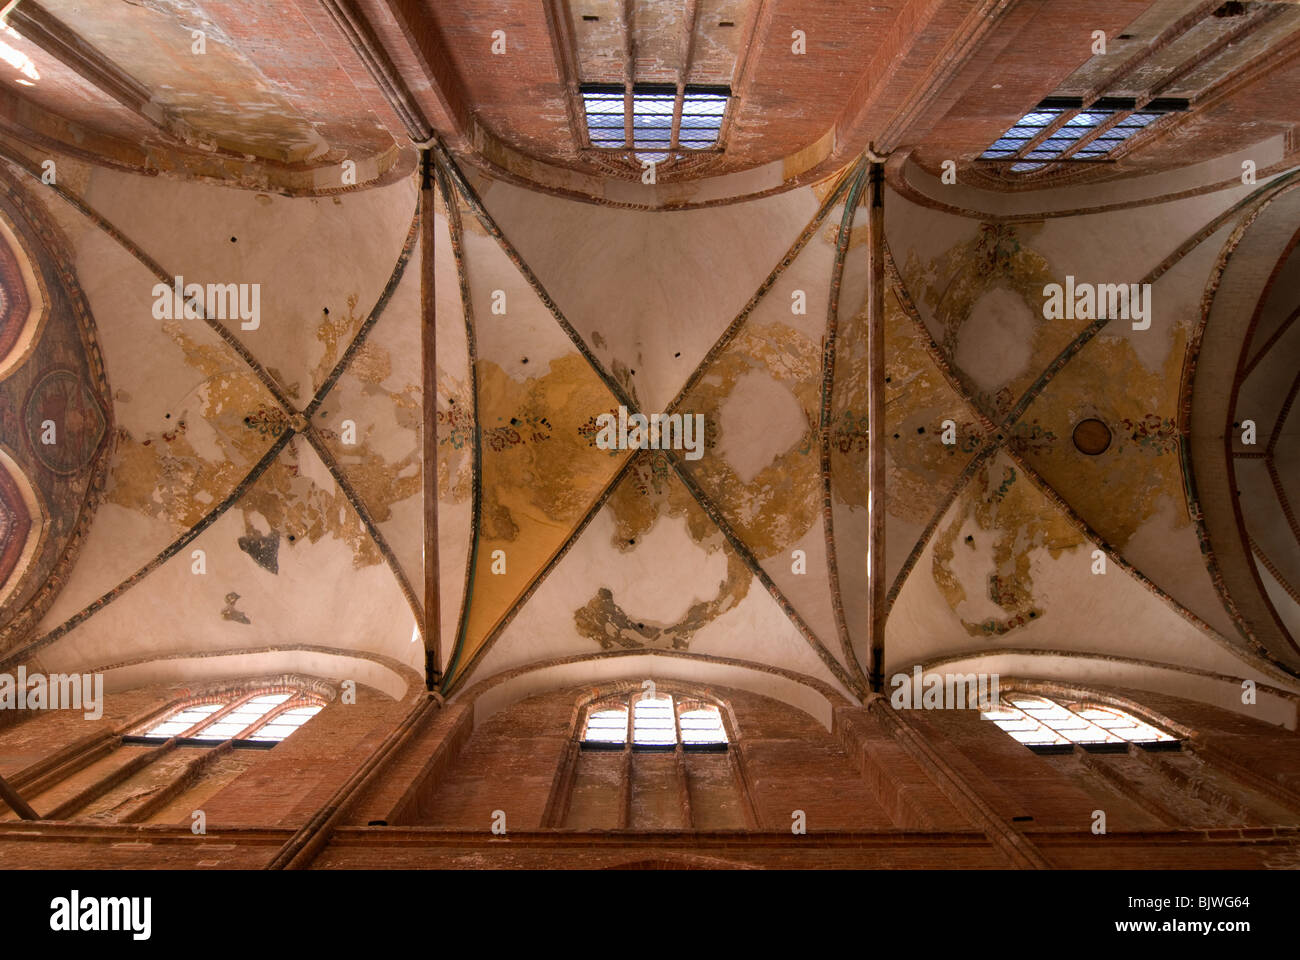 Vaulted ceiling of St. George´s Church in Wismar, Mecklenburg-Western Pomerania, Germany. - Stock Image